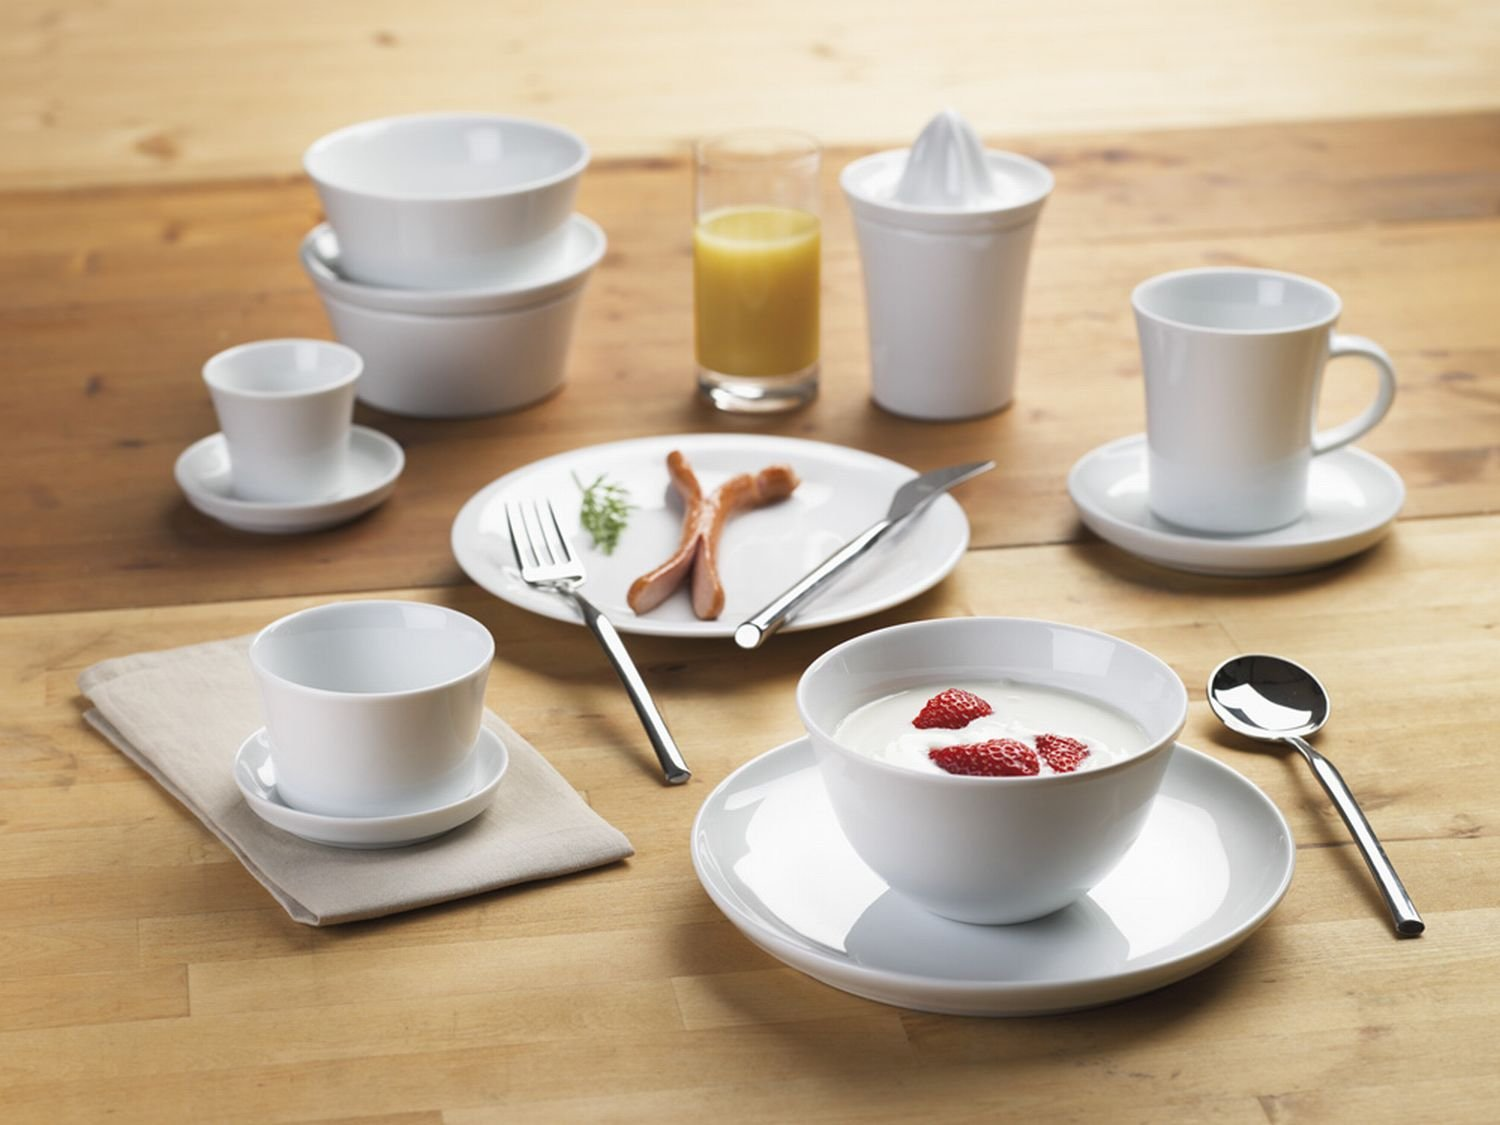 KAHLA Update Stand, 3-piece, White Color, 1 Piece by KAHLA - PORCELAIN FOR THE SENSES (Image #3)